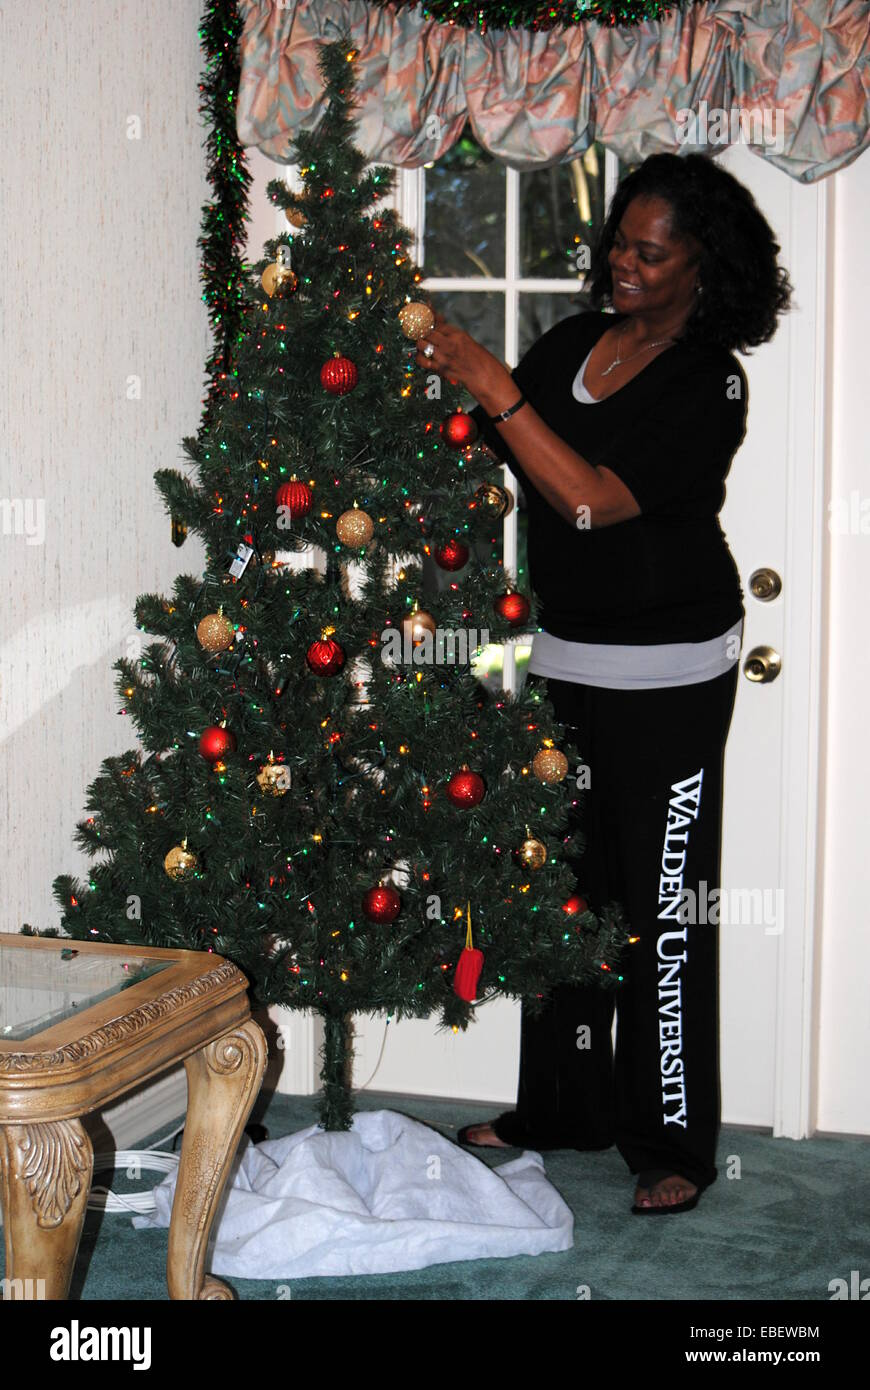 Decorating Christmas Tree at home,getting it ready for gifts and presents.  A scene of complete domestic bliss. - Stock Image